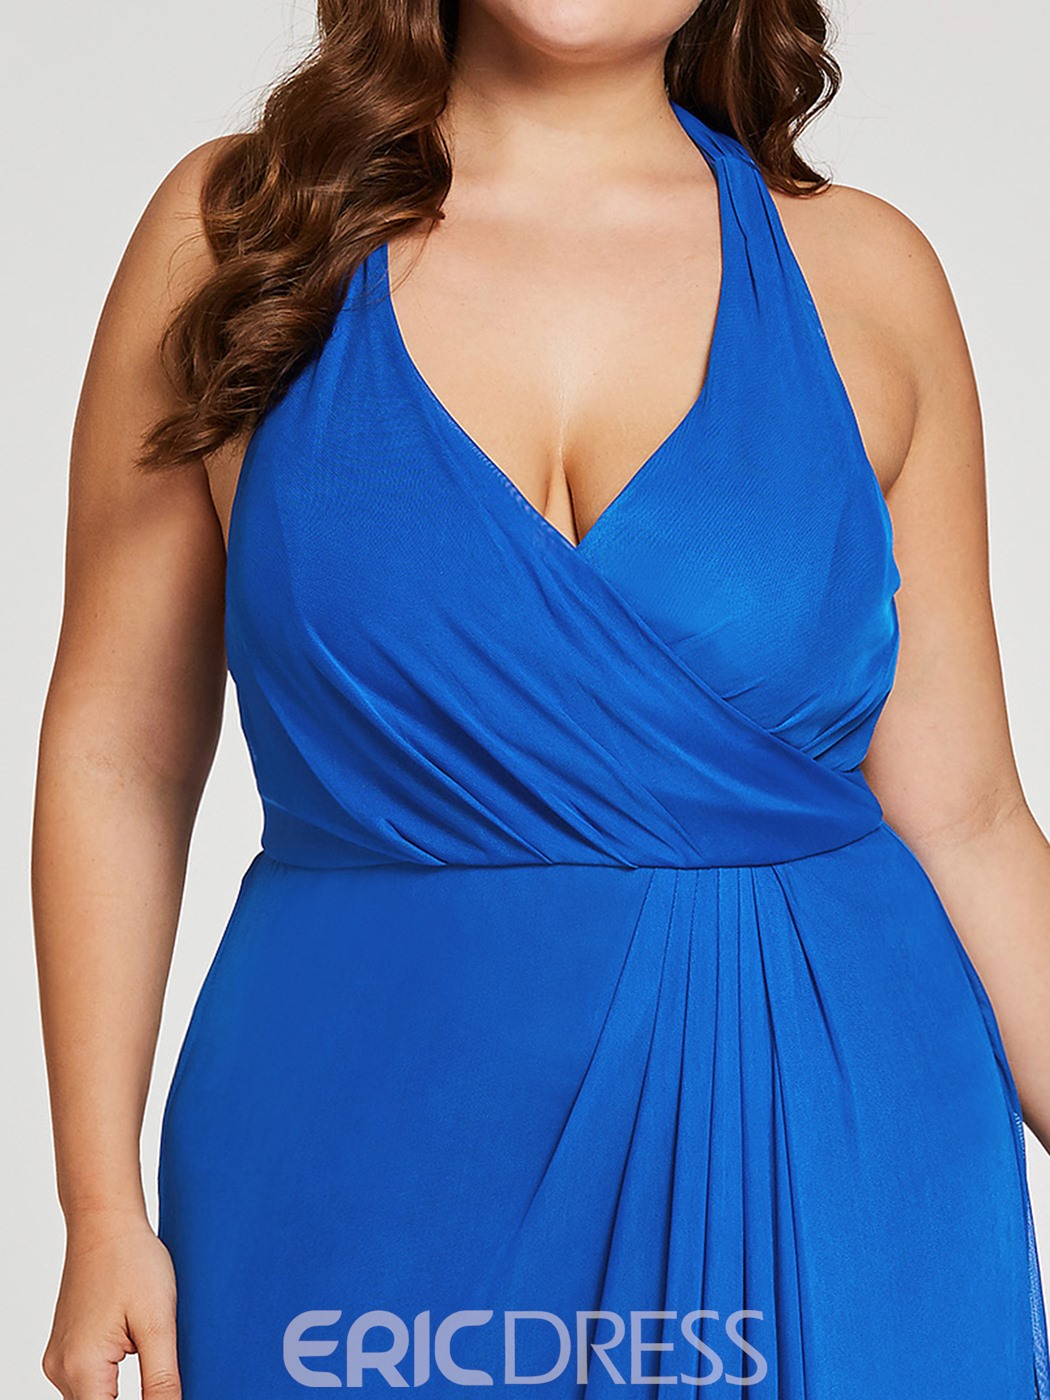 ericdress plus size halter neck pleats scheide langes abendkleid